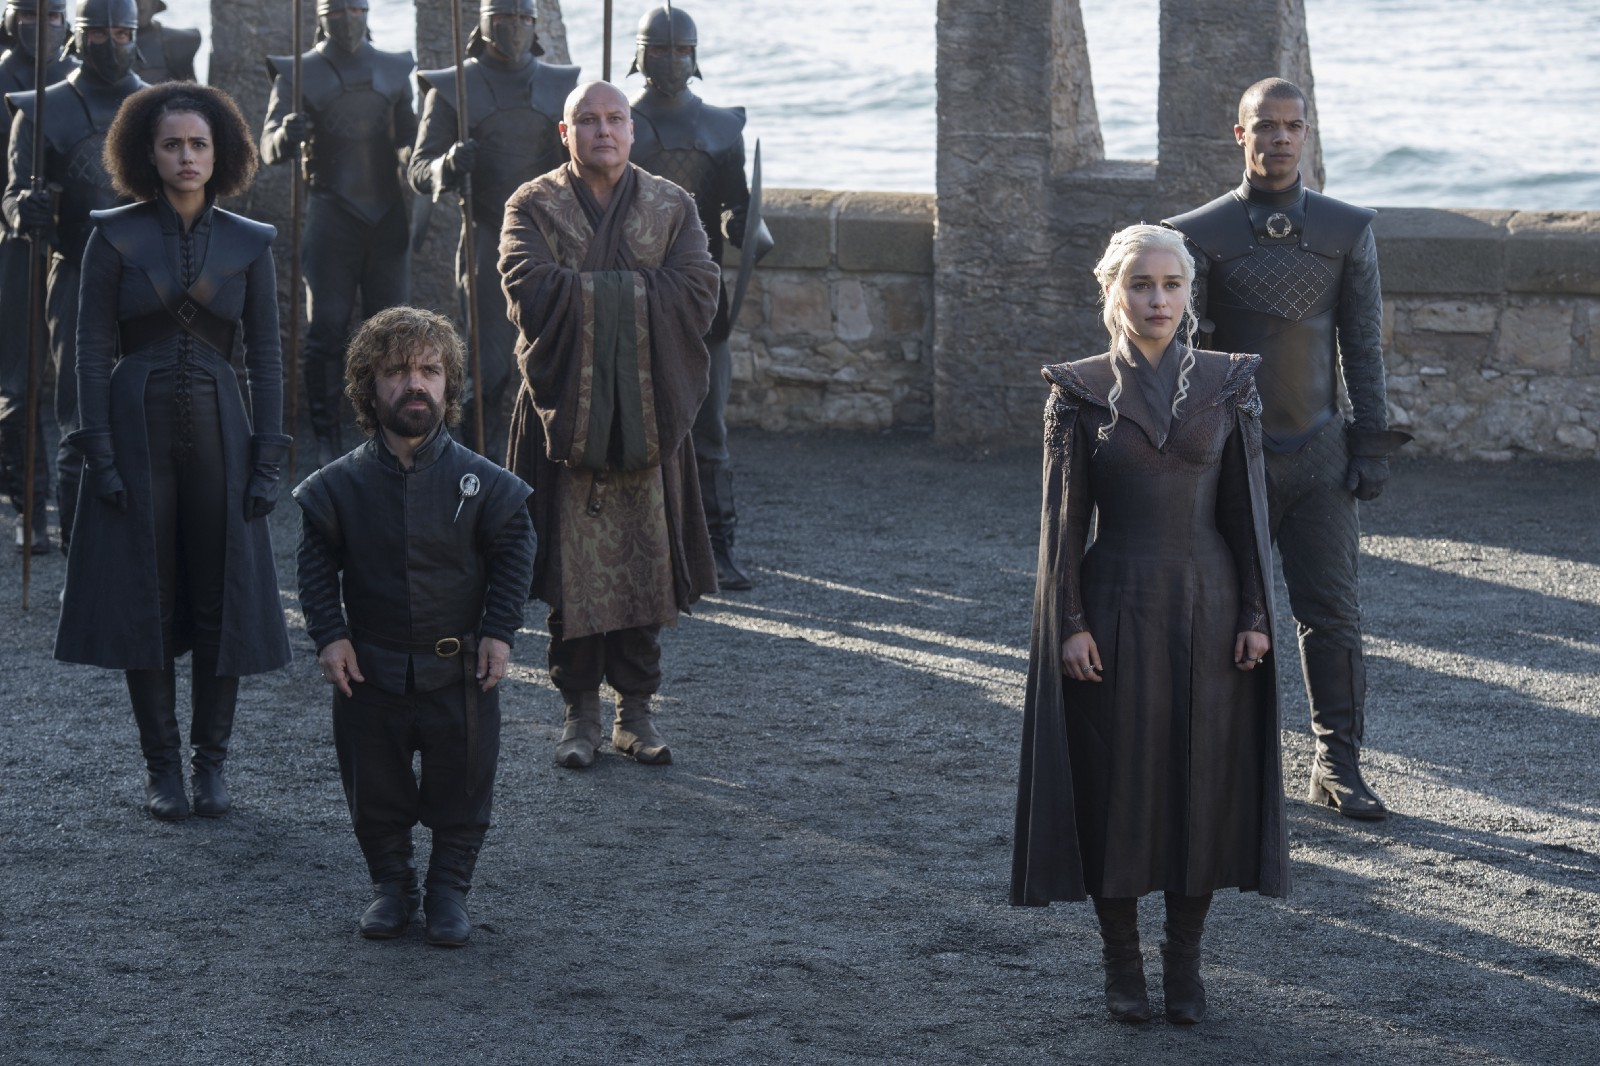 White Sox will host another 'Game of Thrones' night in Chicago this summer